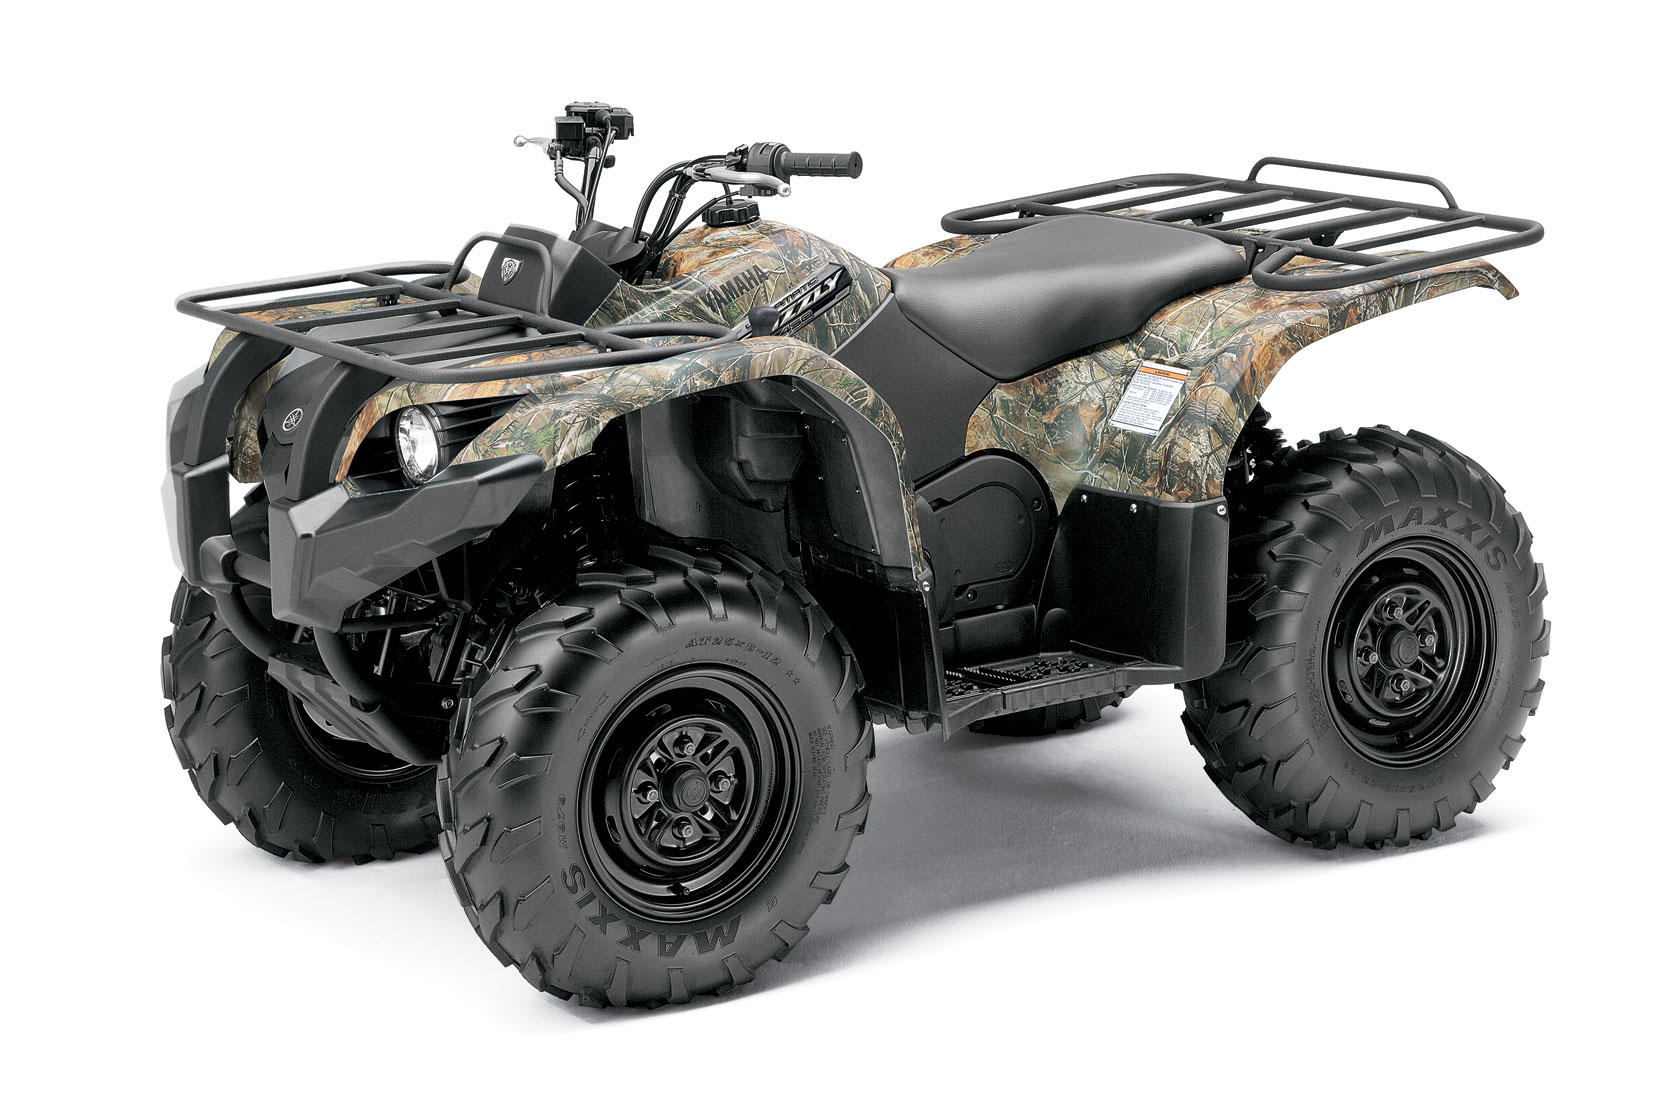 2012 yamaha grizzly 450 auto 4x4 review